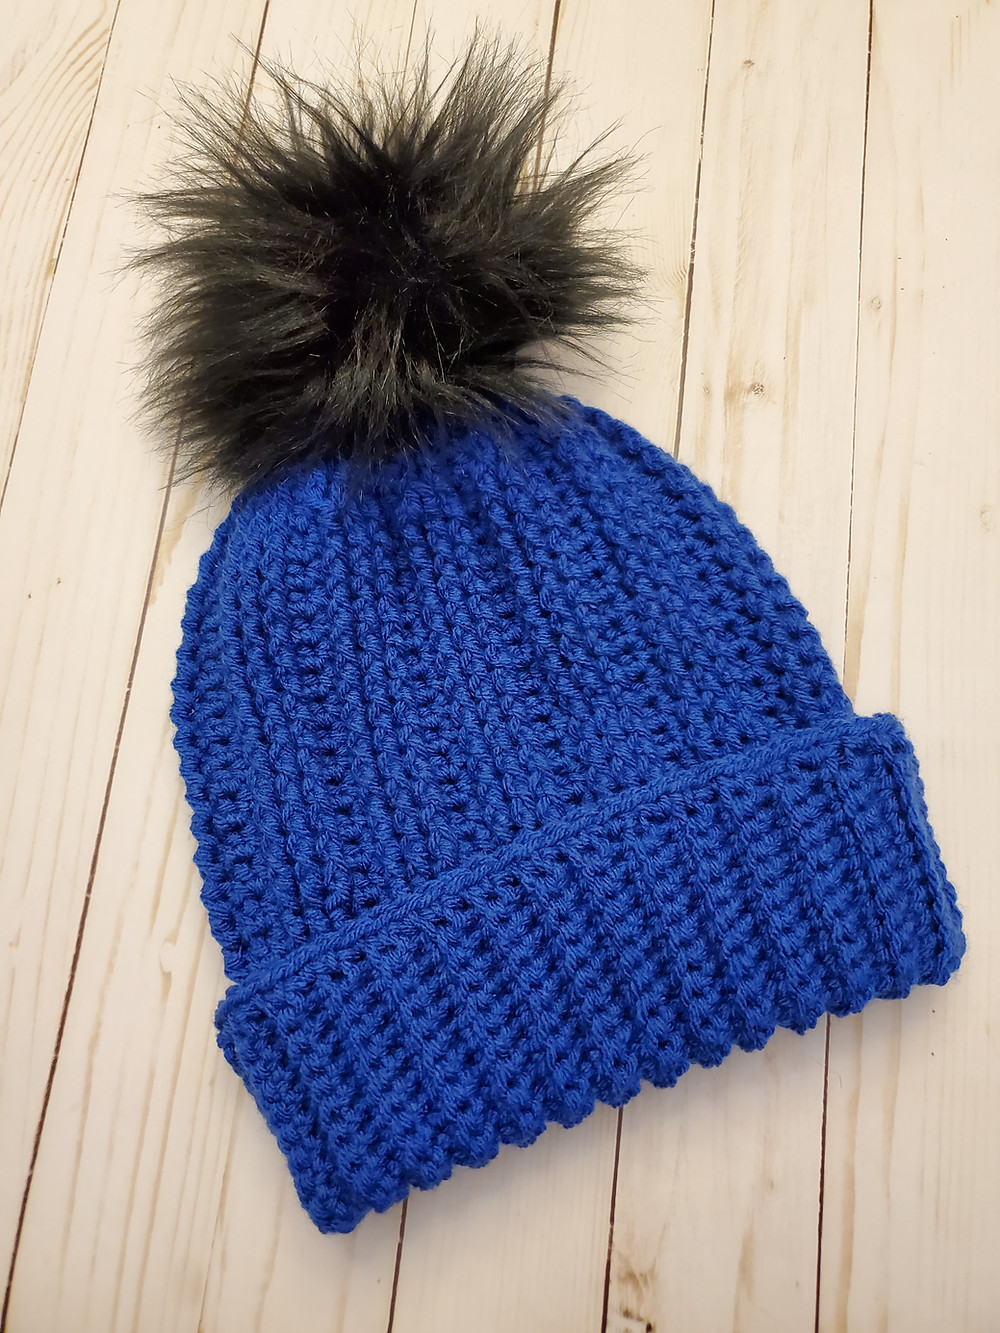 Blue crocheted beanie with a black faux fur pom on a white background